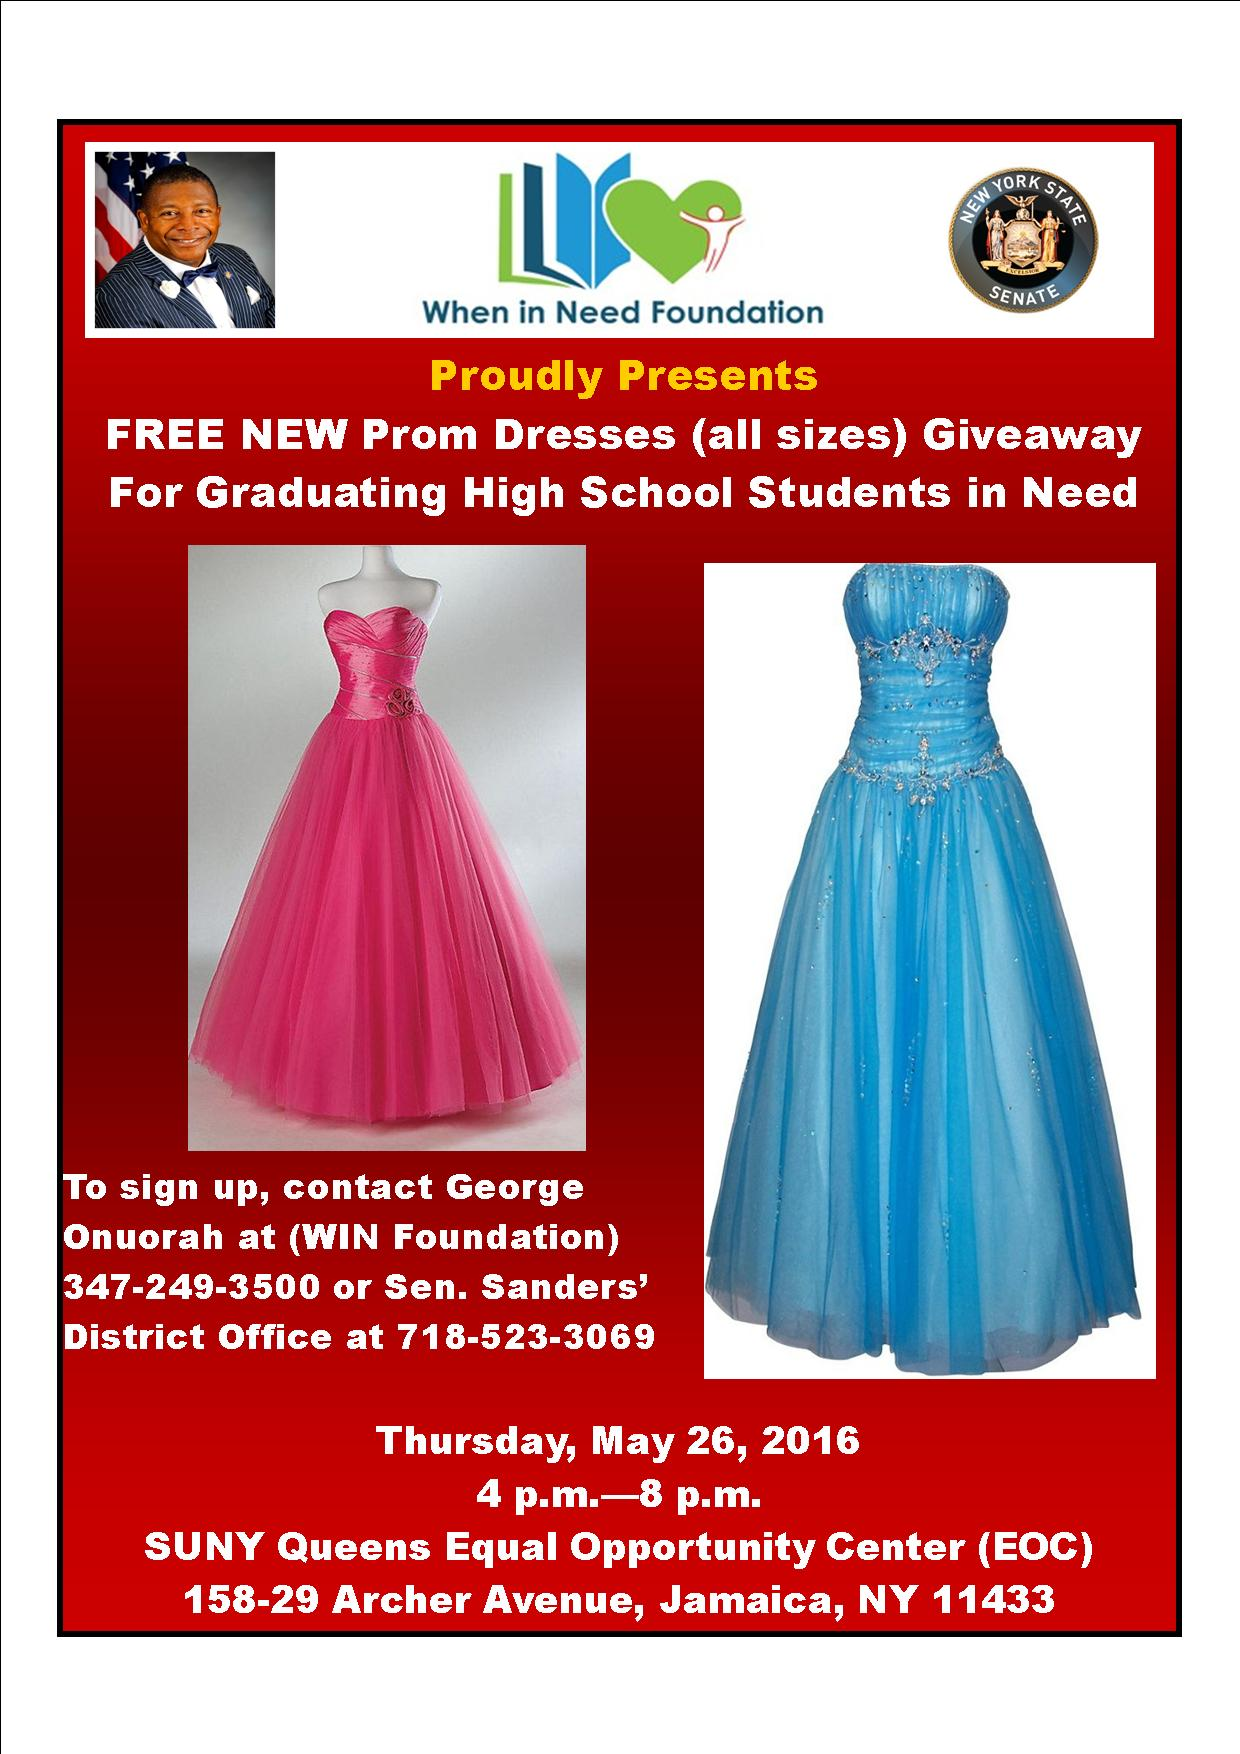 prom giveaway free brand new prom dress giveaway jamaica 311 6199